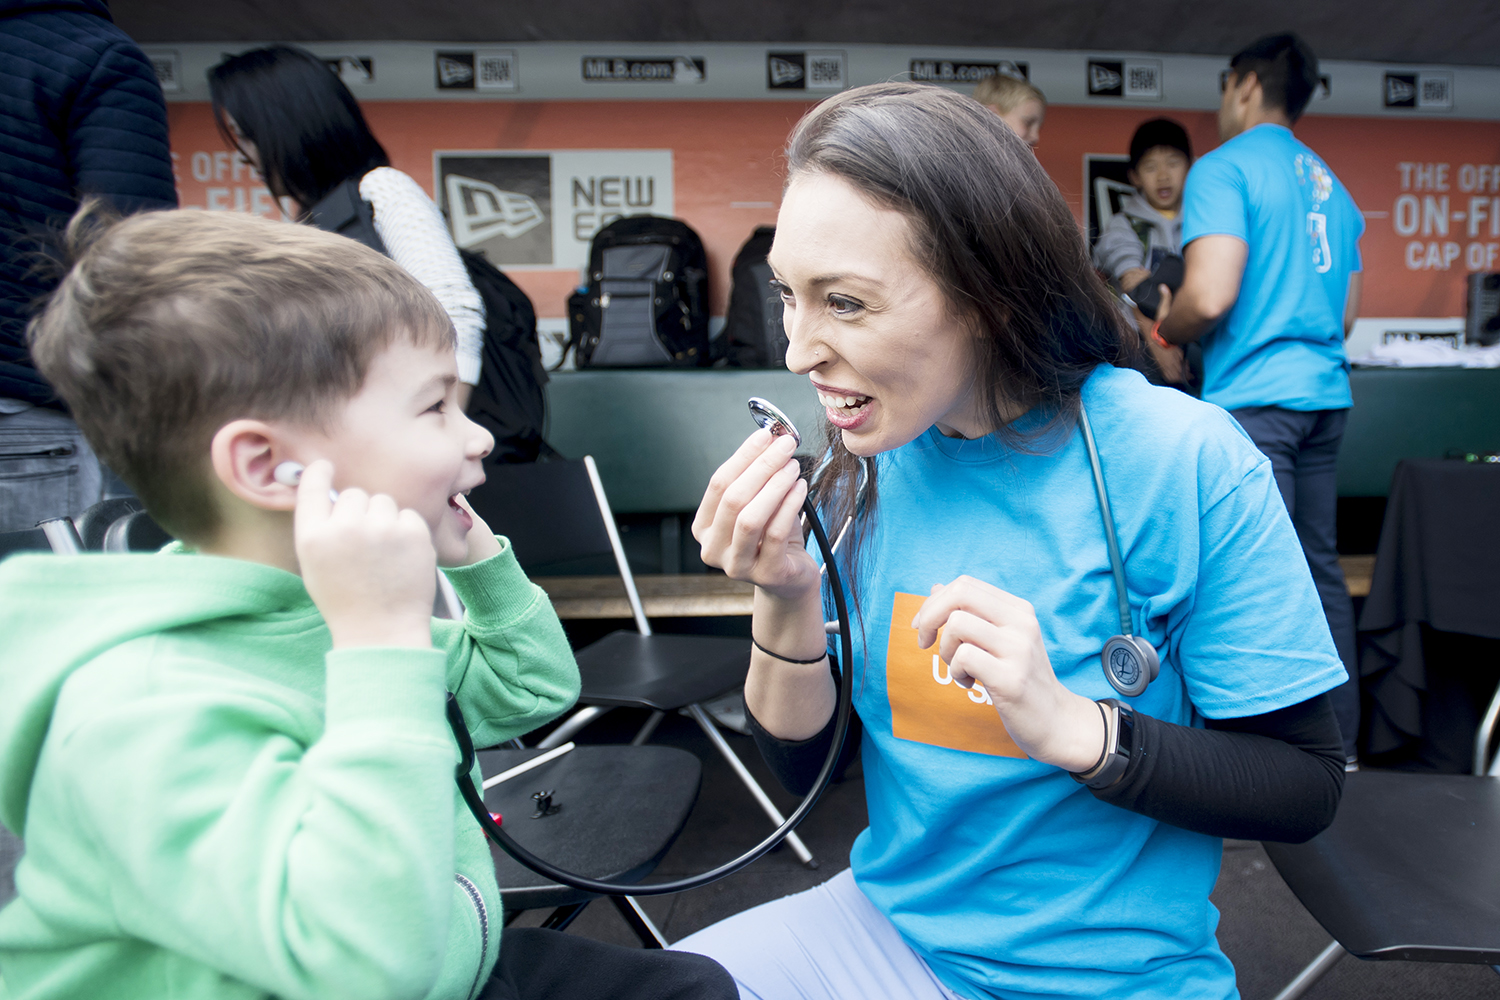 Misty Montoya teaches a child about stethoscopes at one of UCSF's hands-on learning exhibit